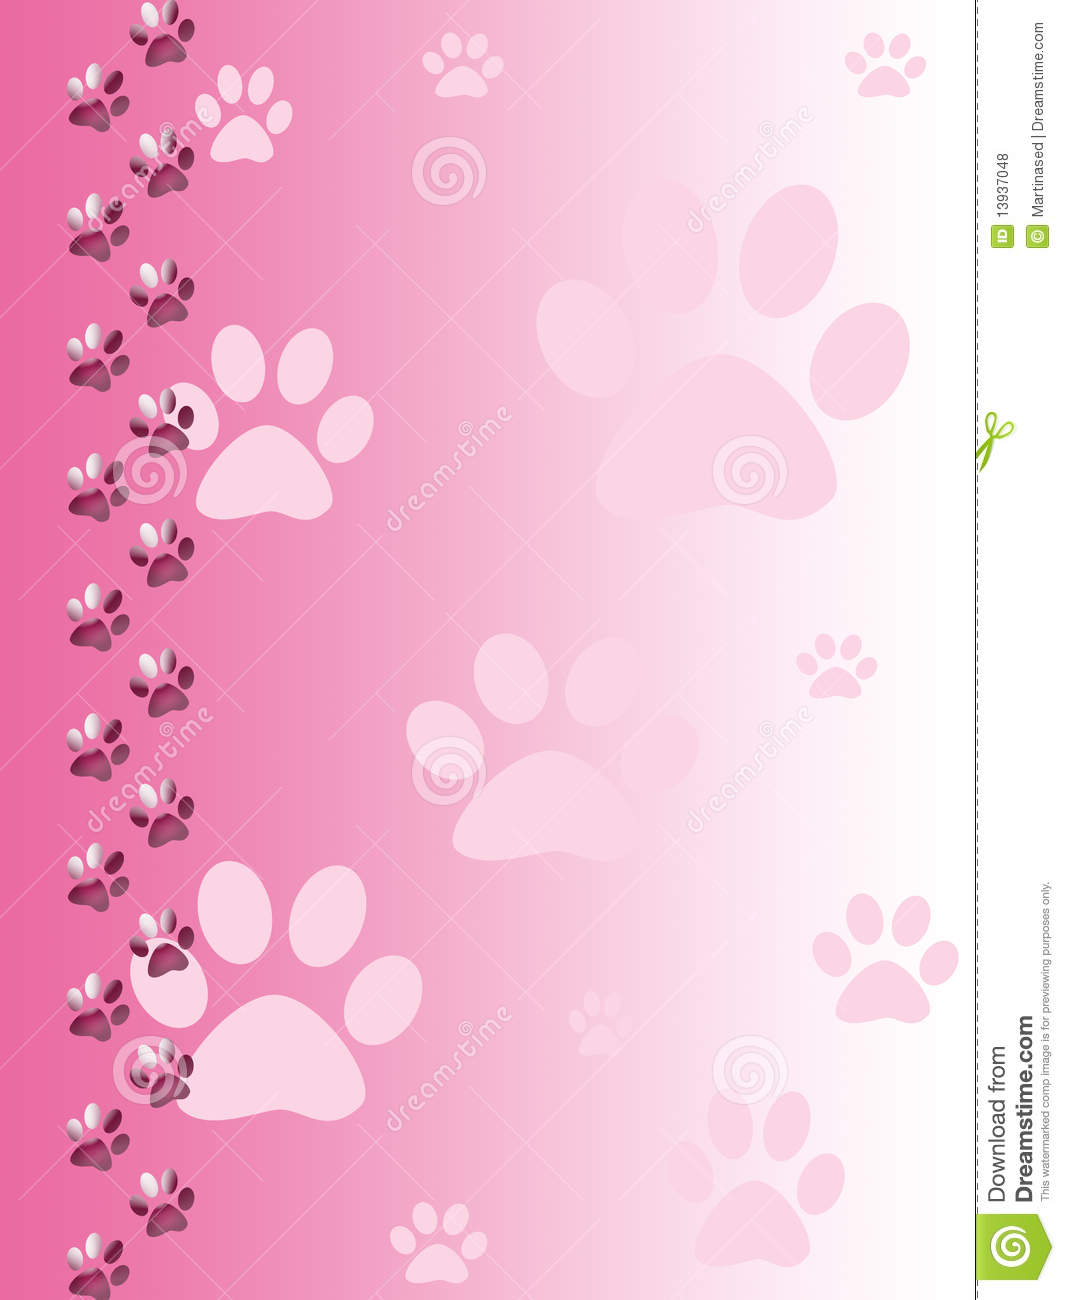 Cat Paw Print Border Paw print border, cute pink cat paw print ...